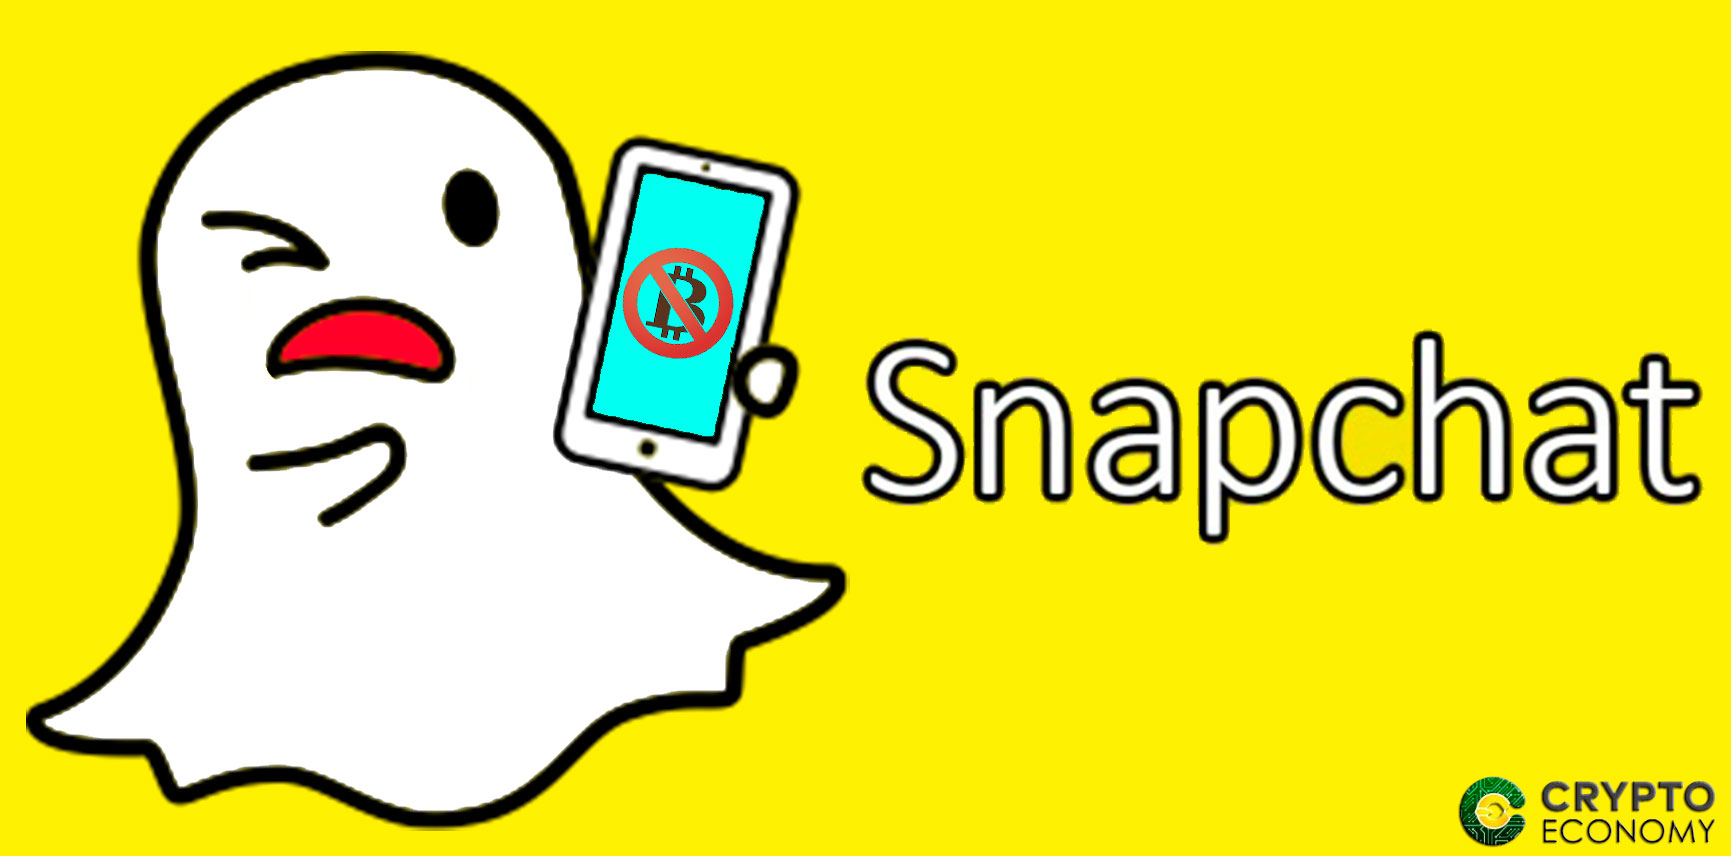 Snapchat bans ICOS and cryptocurrencies